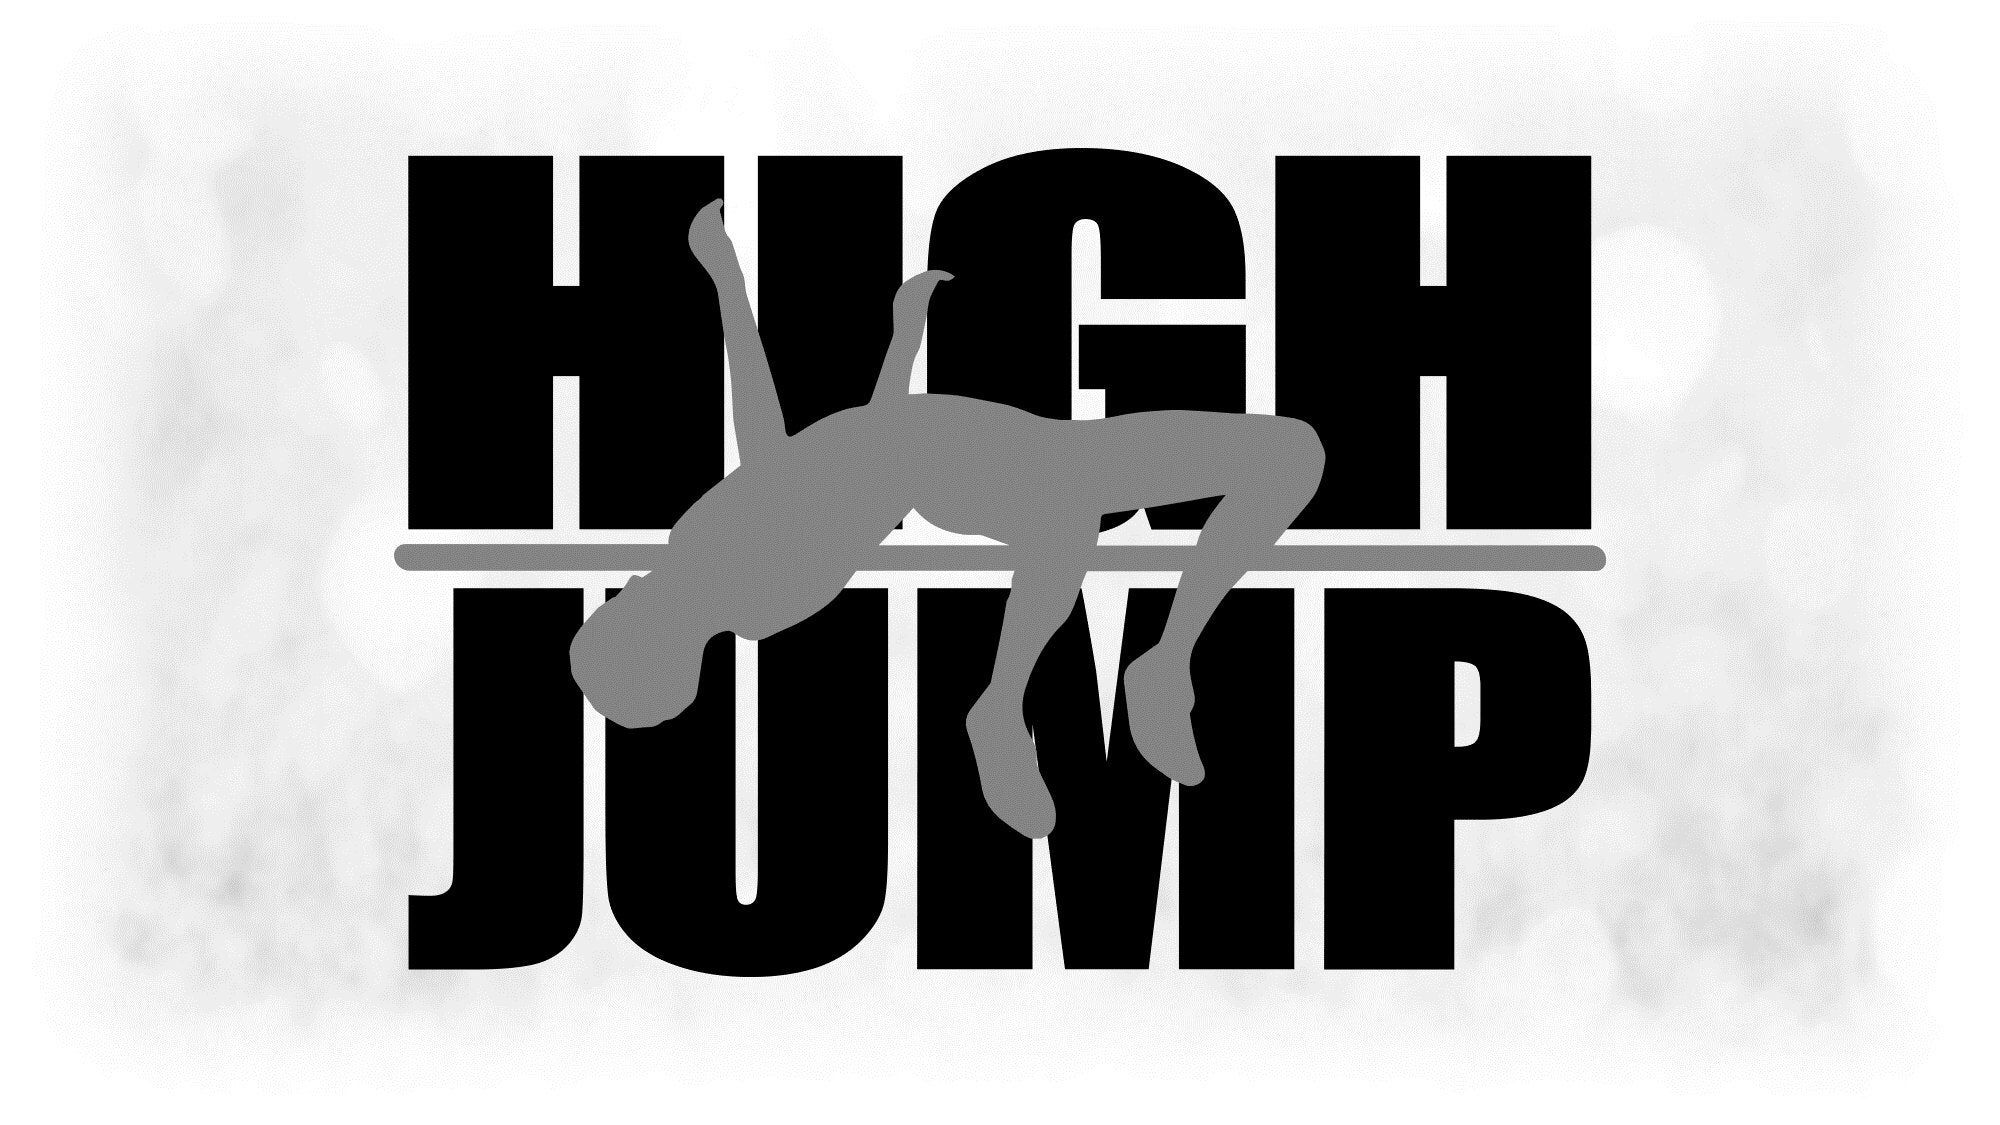 Sports Clipart Large Black White Track Field Words Etsy Track And Field High Jump Clip Art